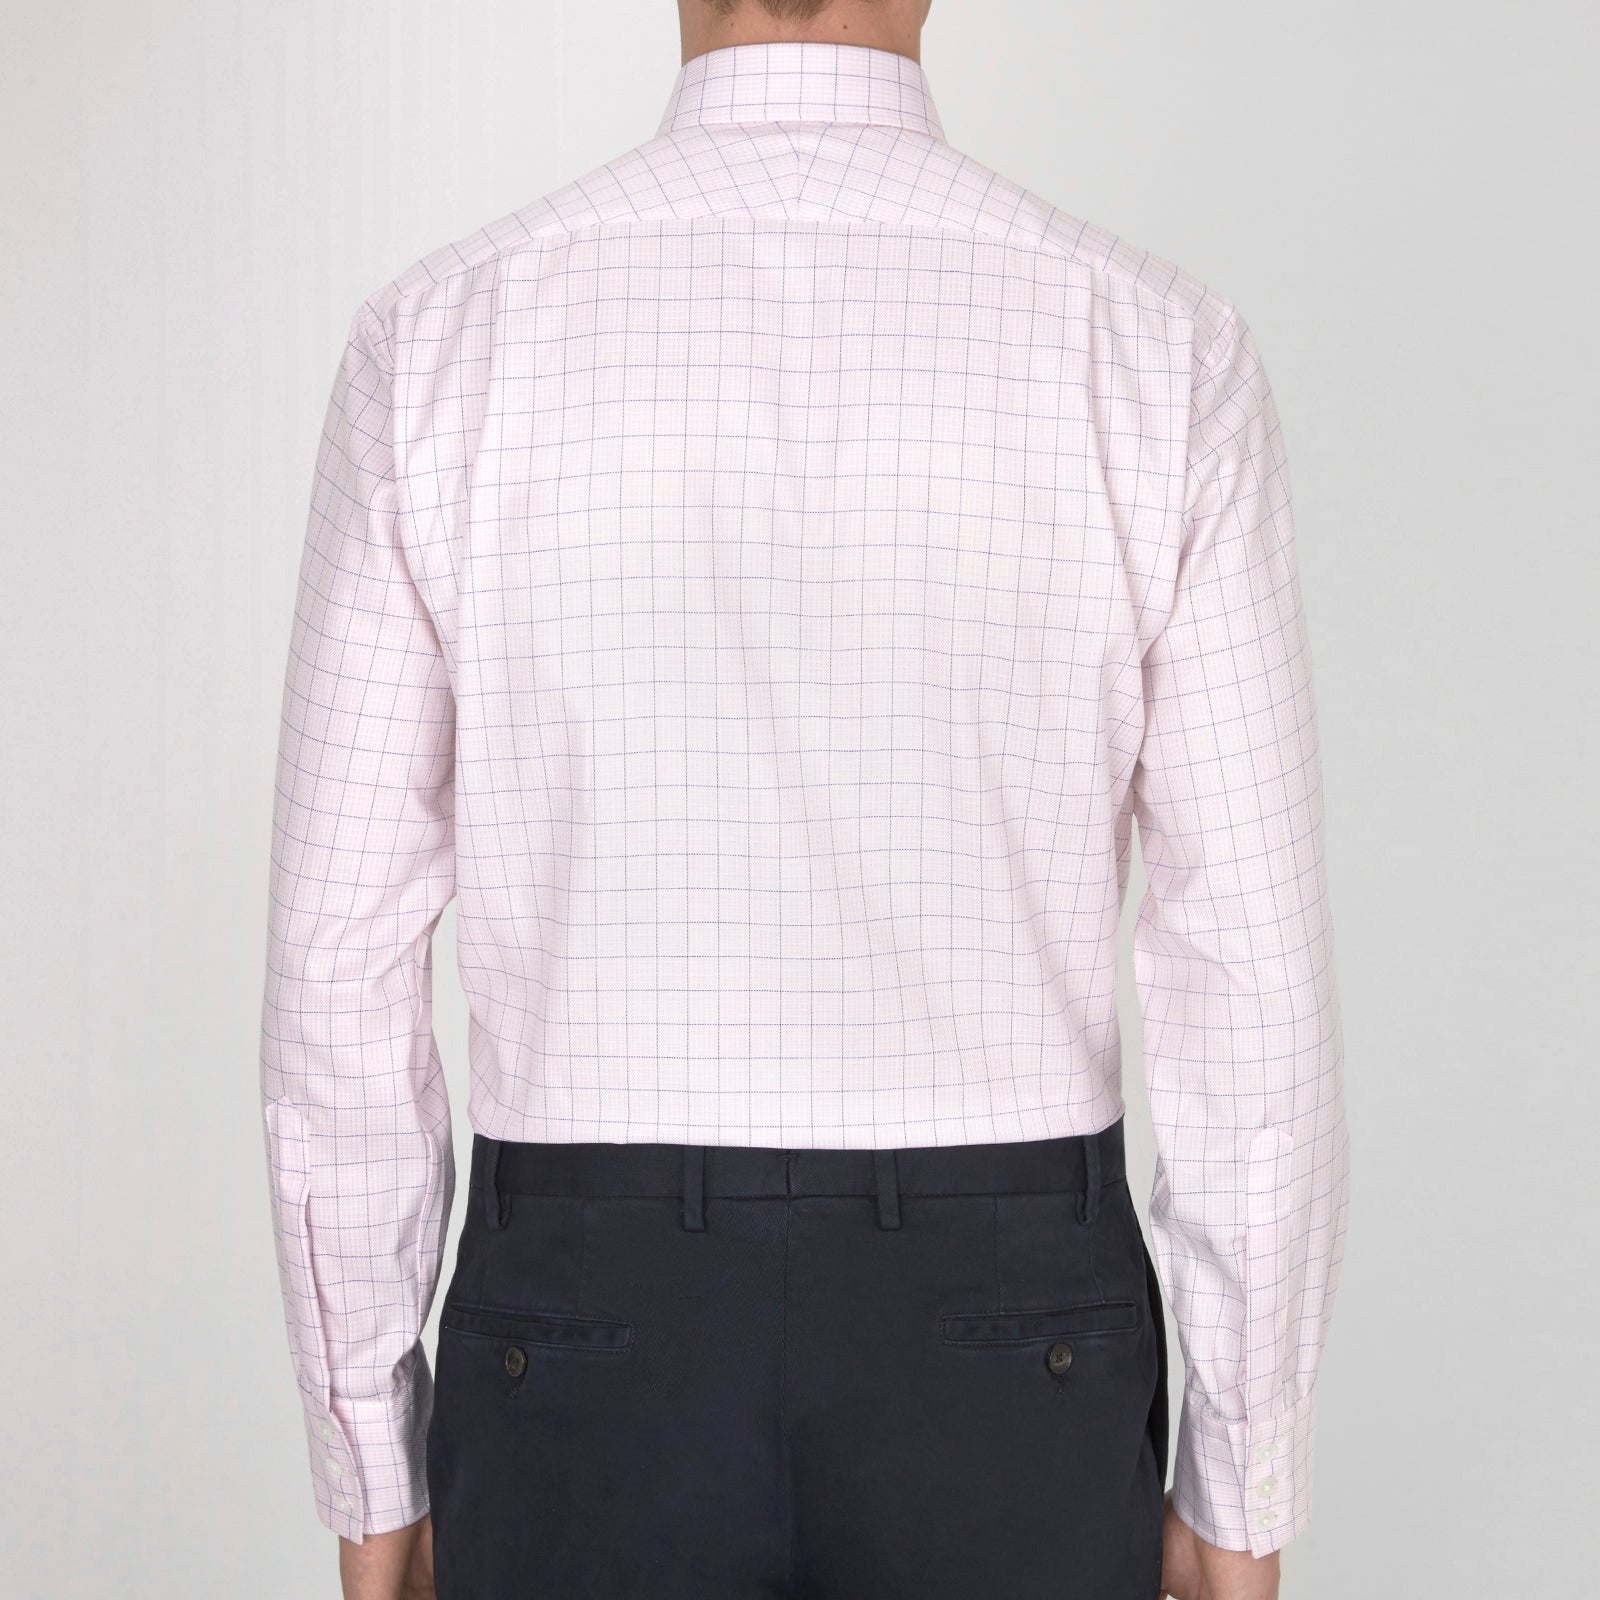 Pink and Purple Grid Check Shirt with T&A Collar and Button Cuffs